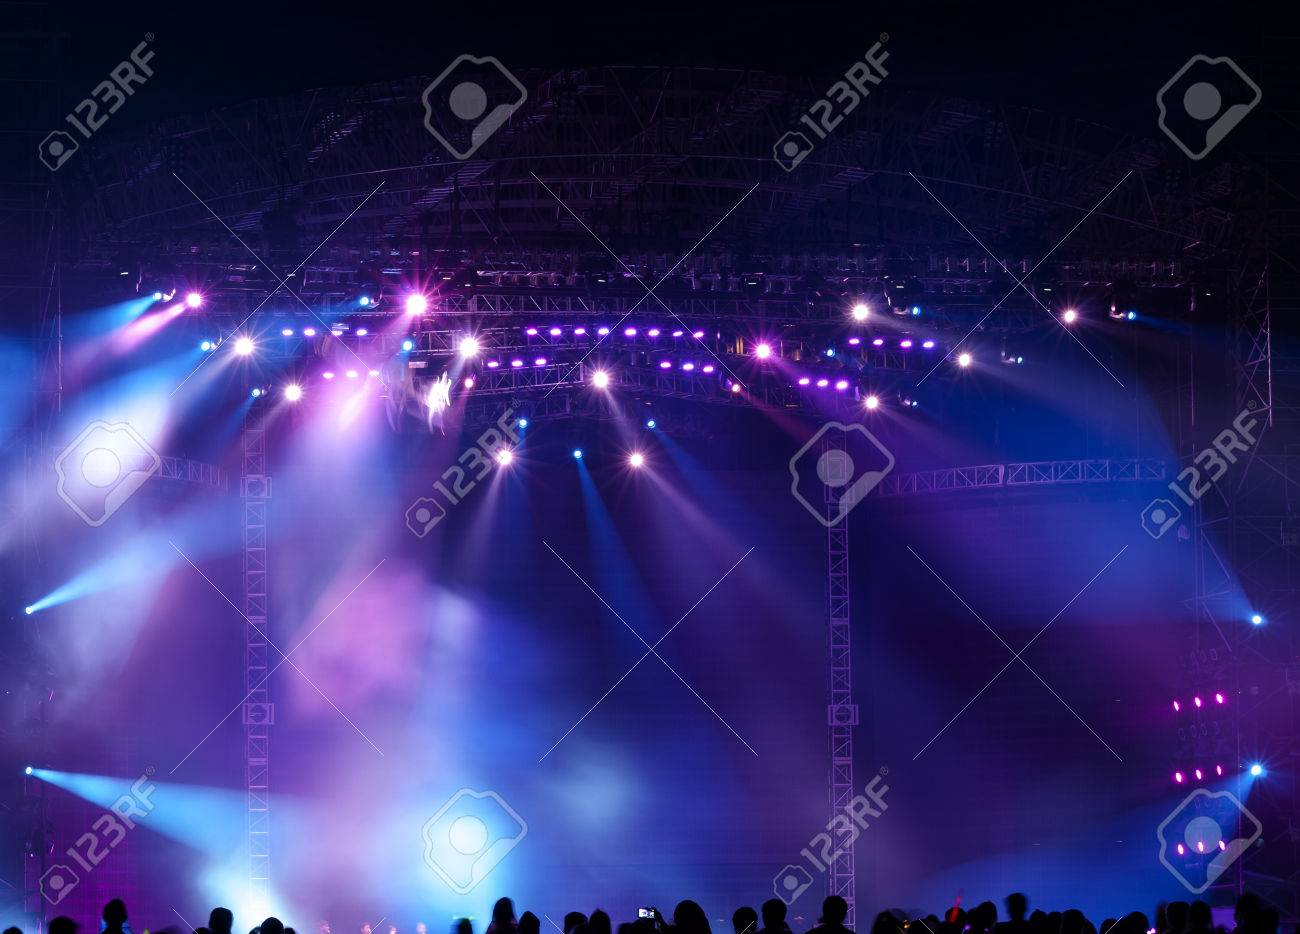 Stage Spotlight with Laser rays - 35811919